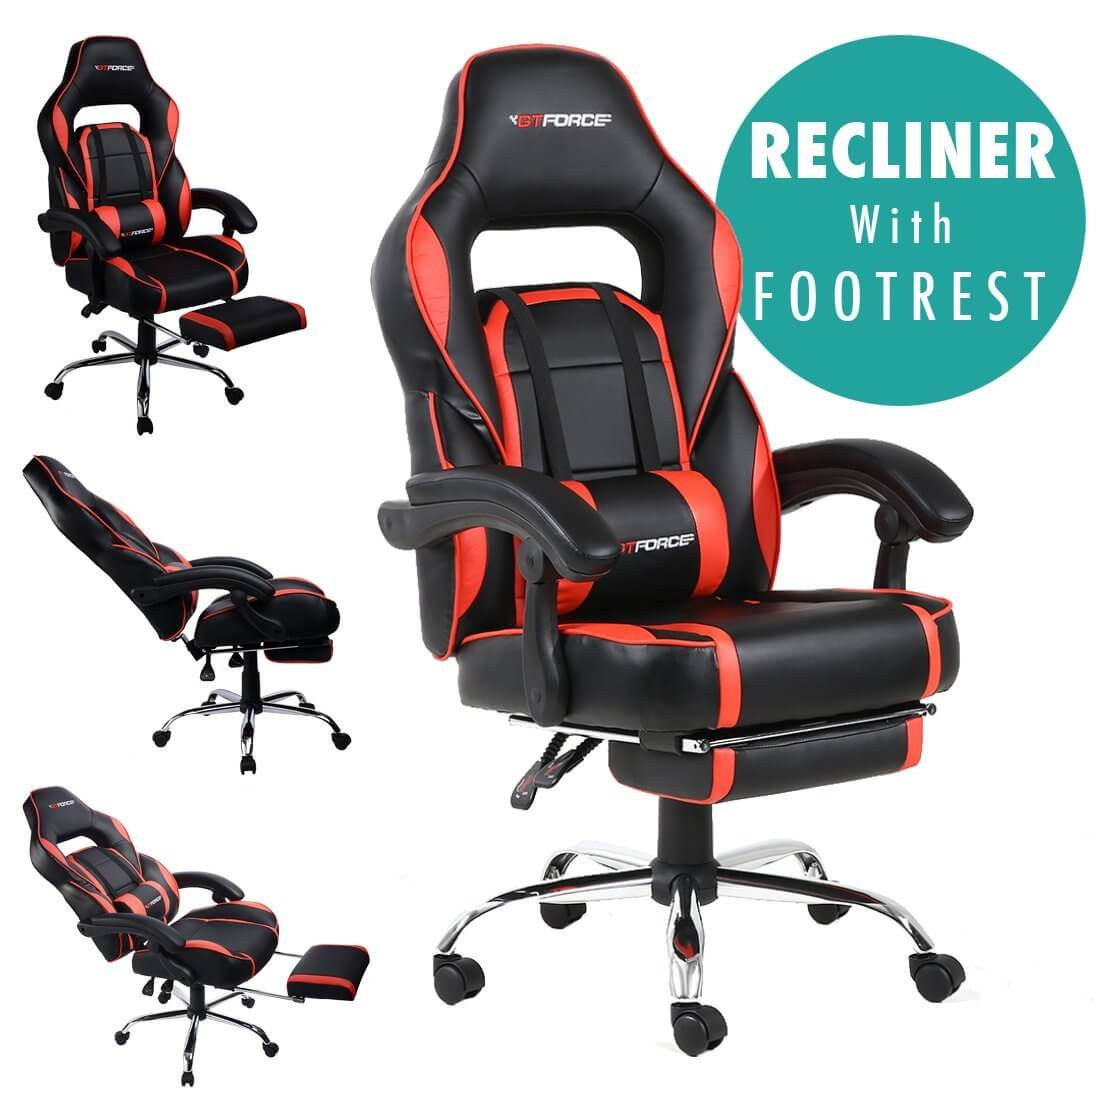 Gamers Chairs Best Pc Gaming Chair Under 100 150 Uk 2018 Recommended Budget Comfortable Gaming Chair Best Gaming Laptops